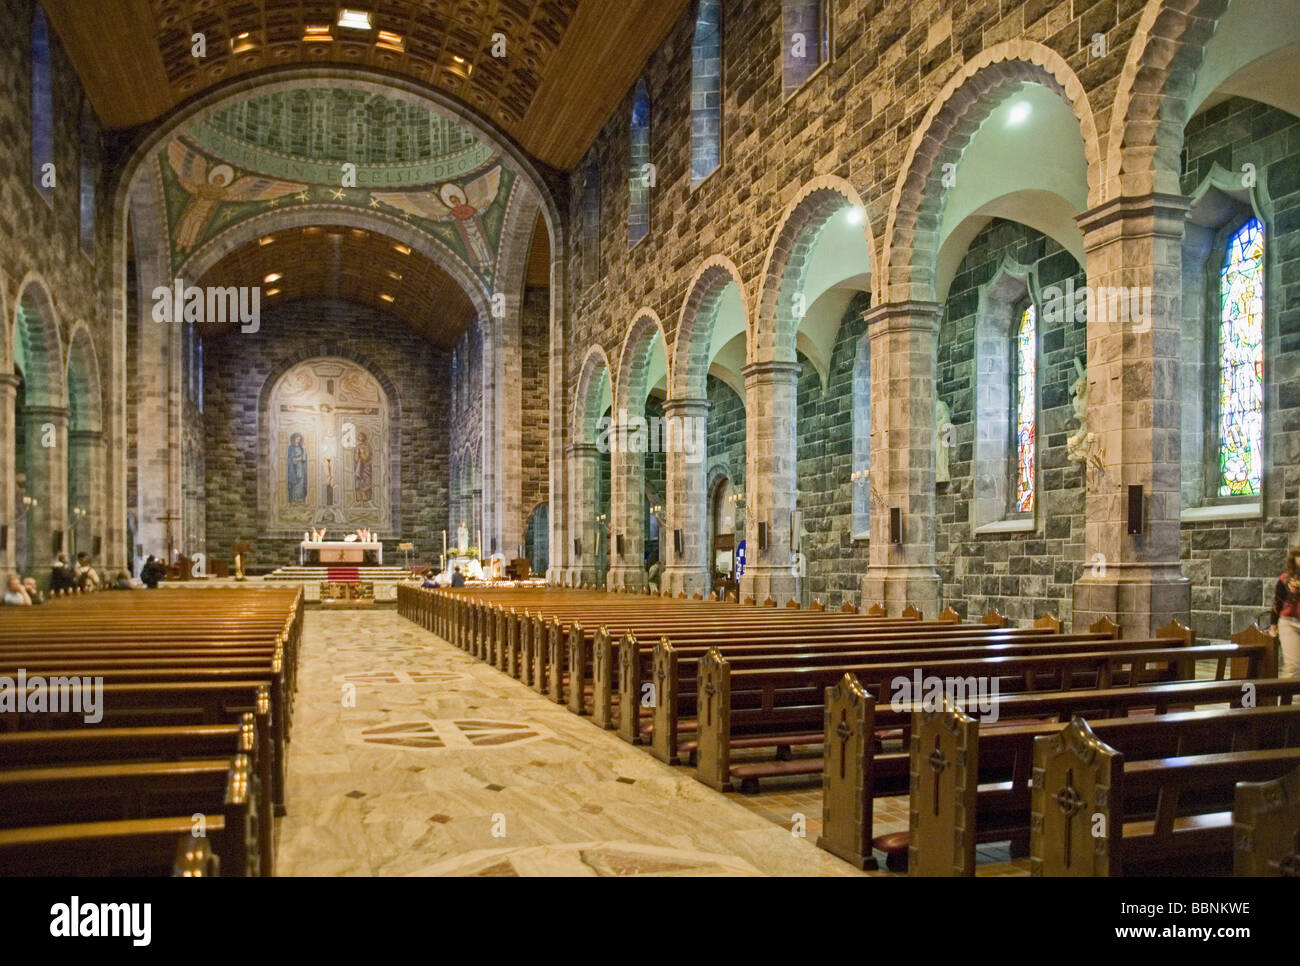 geography / travel, Ireland, Connacht, Galway, churches, Cathedral of Our Lady Assumed into heaven and St. Nicholas, - Stock Image